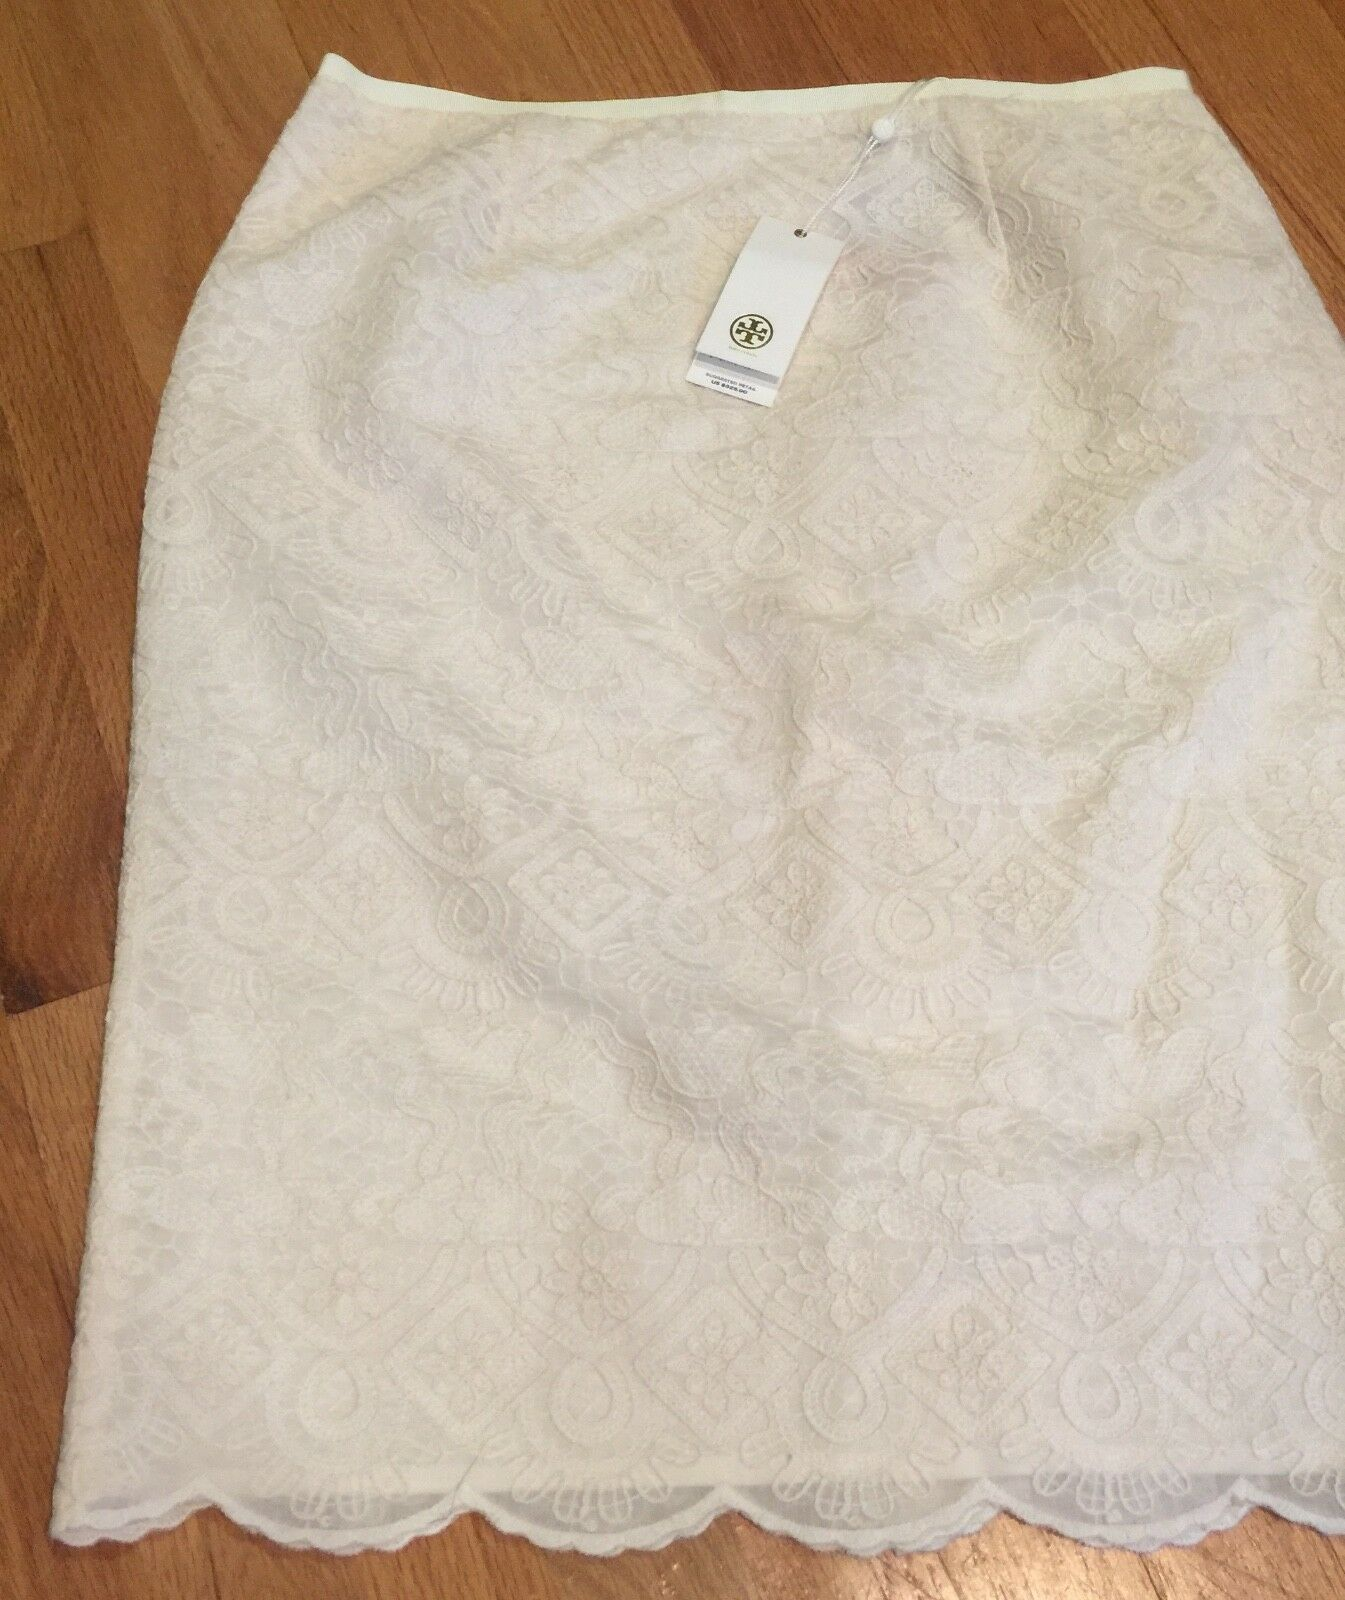 NWT Tory Burch Lace Debra Skirt New Ivory Cream White Scallop Hem Sz 10 M  325